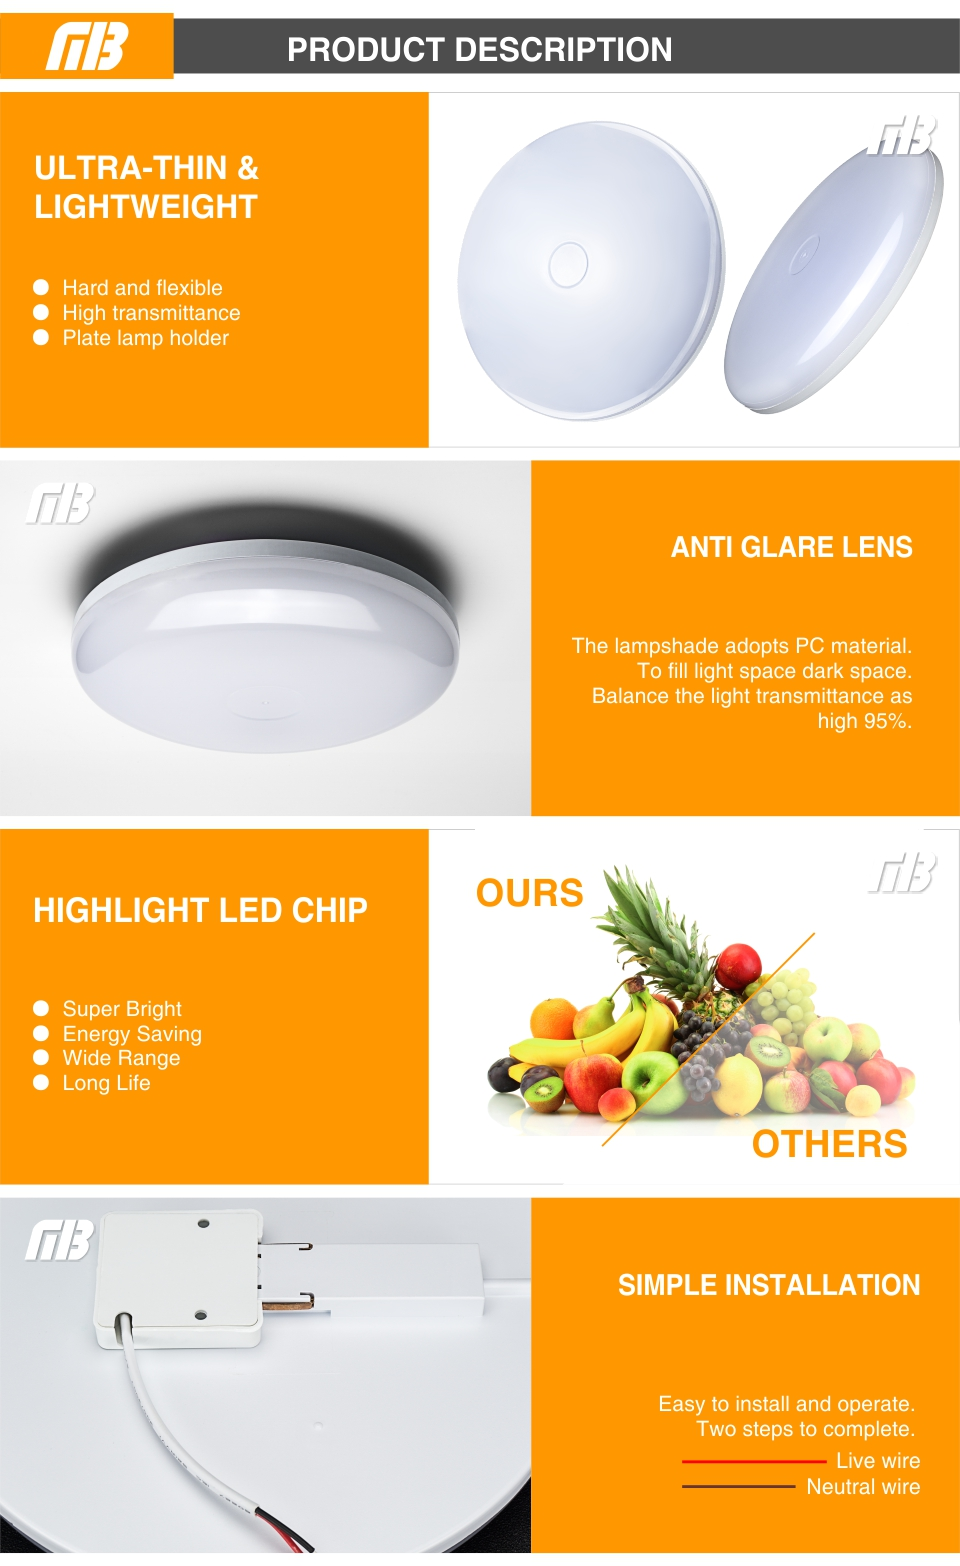 HTB1H2uNavfsK1RjSszgq6yXzpXaT LED Panel Lamp LED Ceiling Light 48W 36W 24W 18W 13W 9W 6W Down Light Surface Mounted AC 85-265V Modern Lamp For Home Lighting